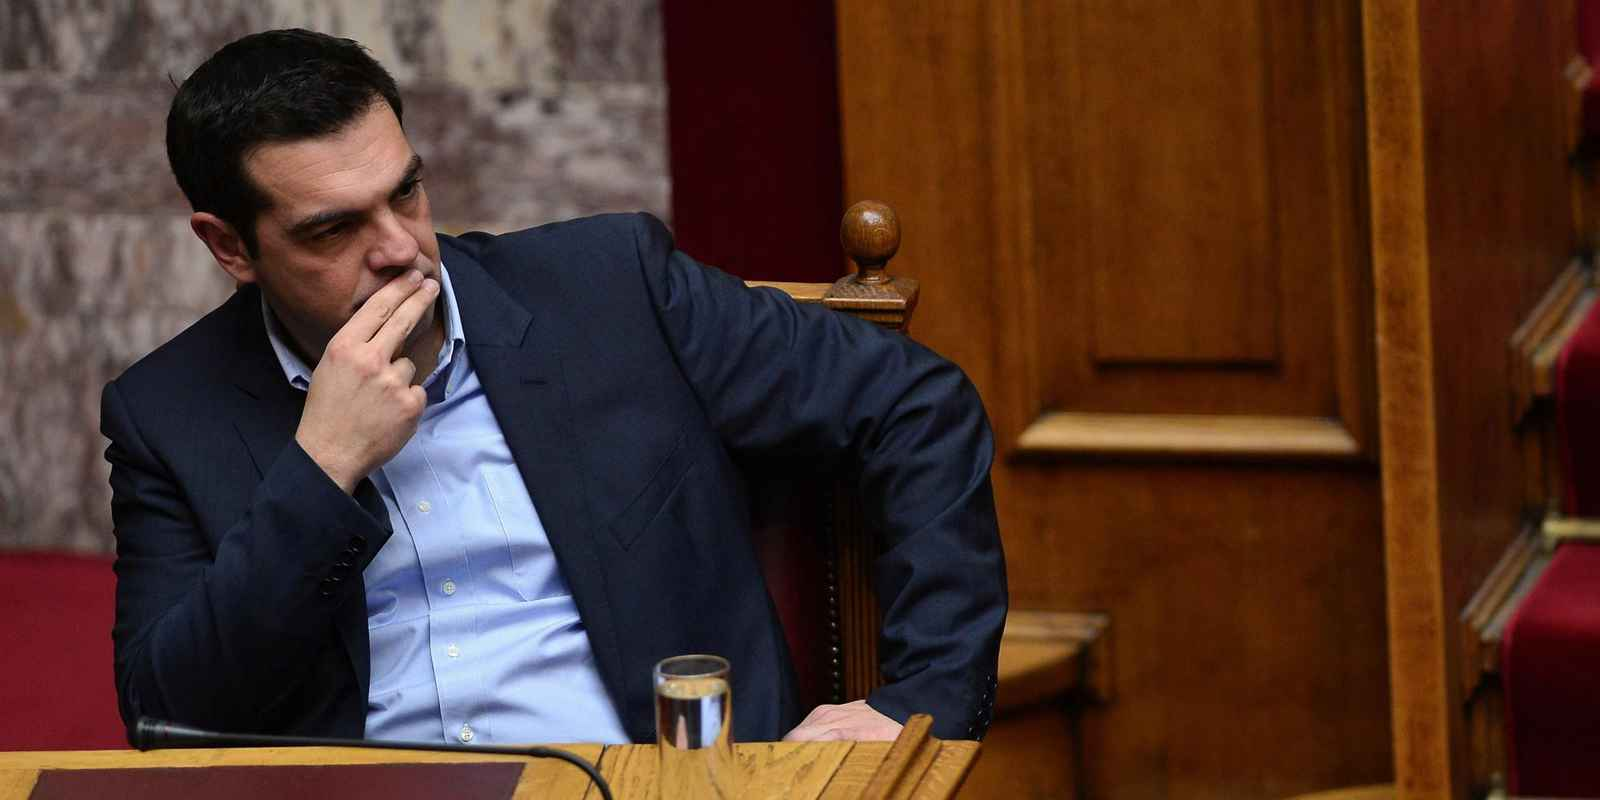 GREECE-POLITICS-ECONOMY